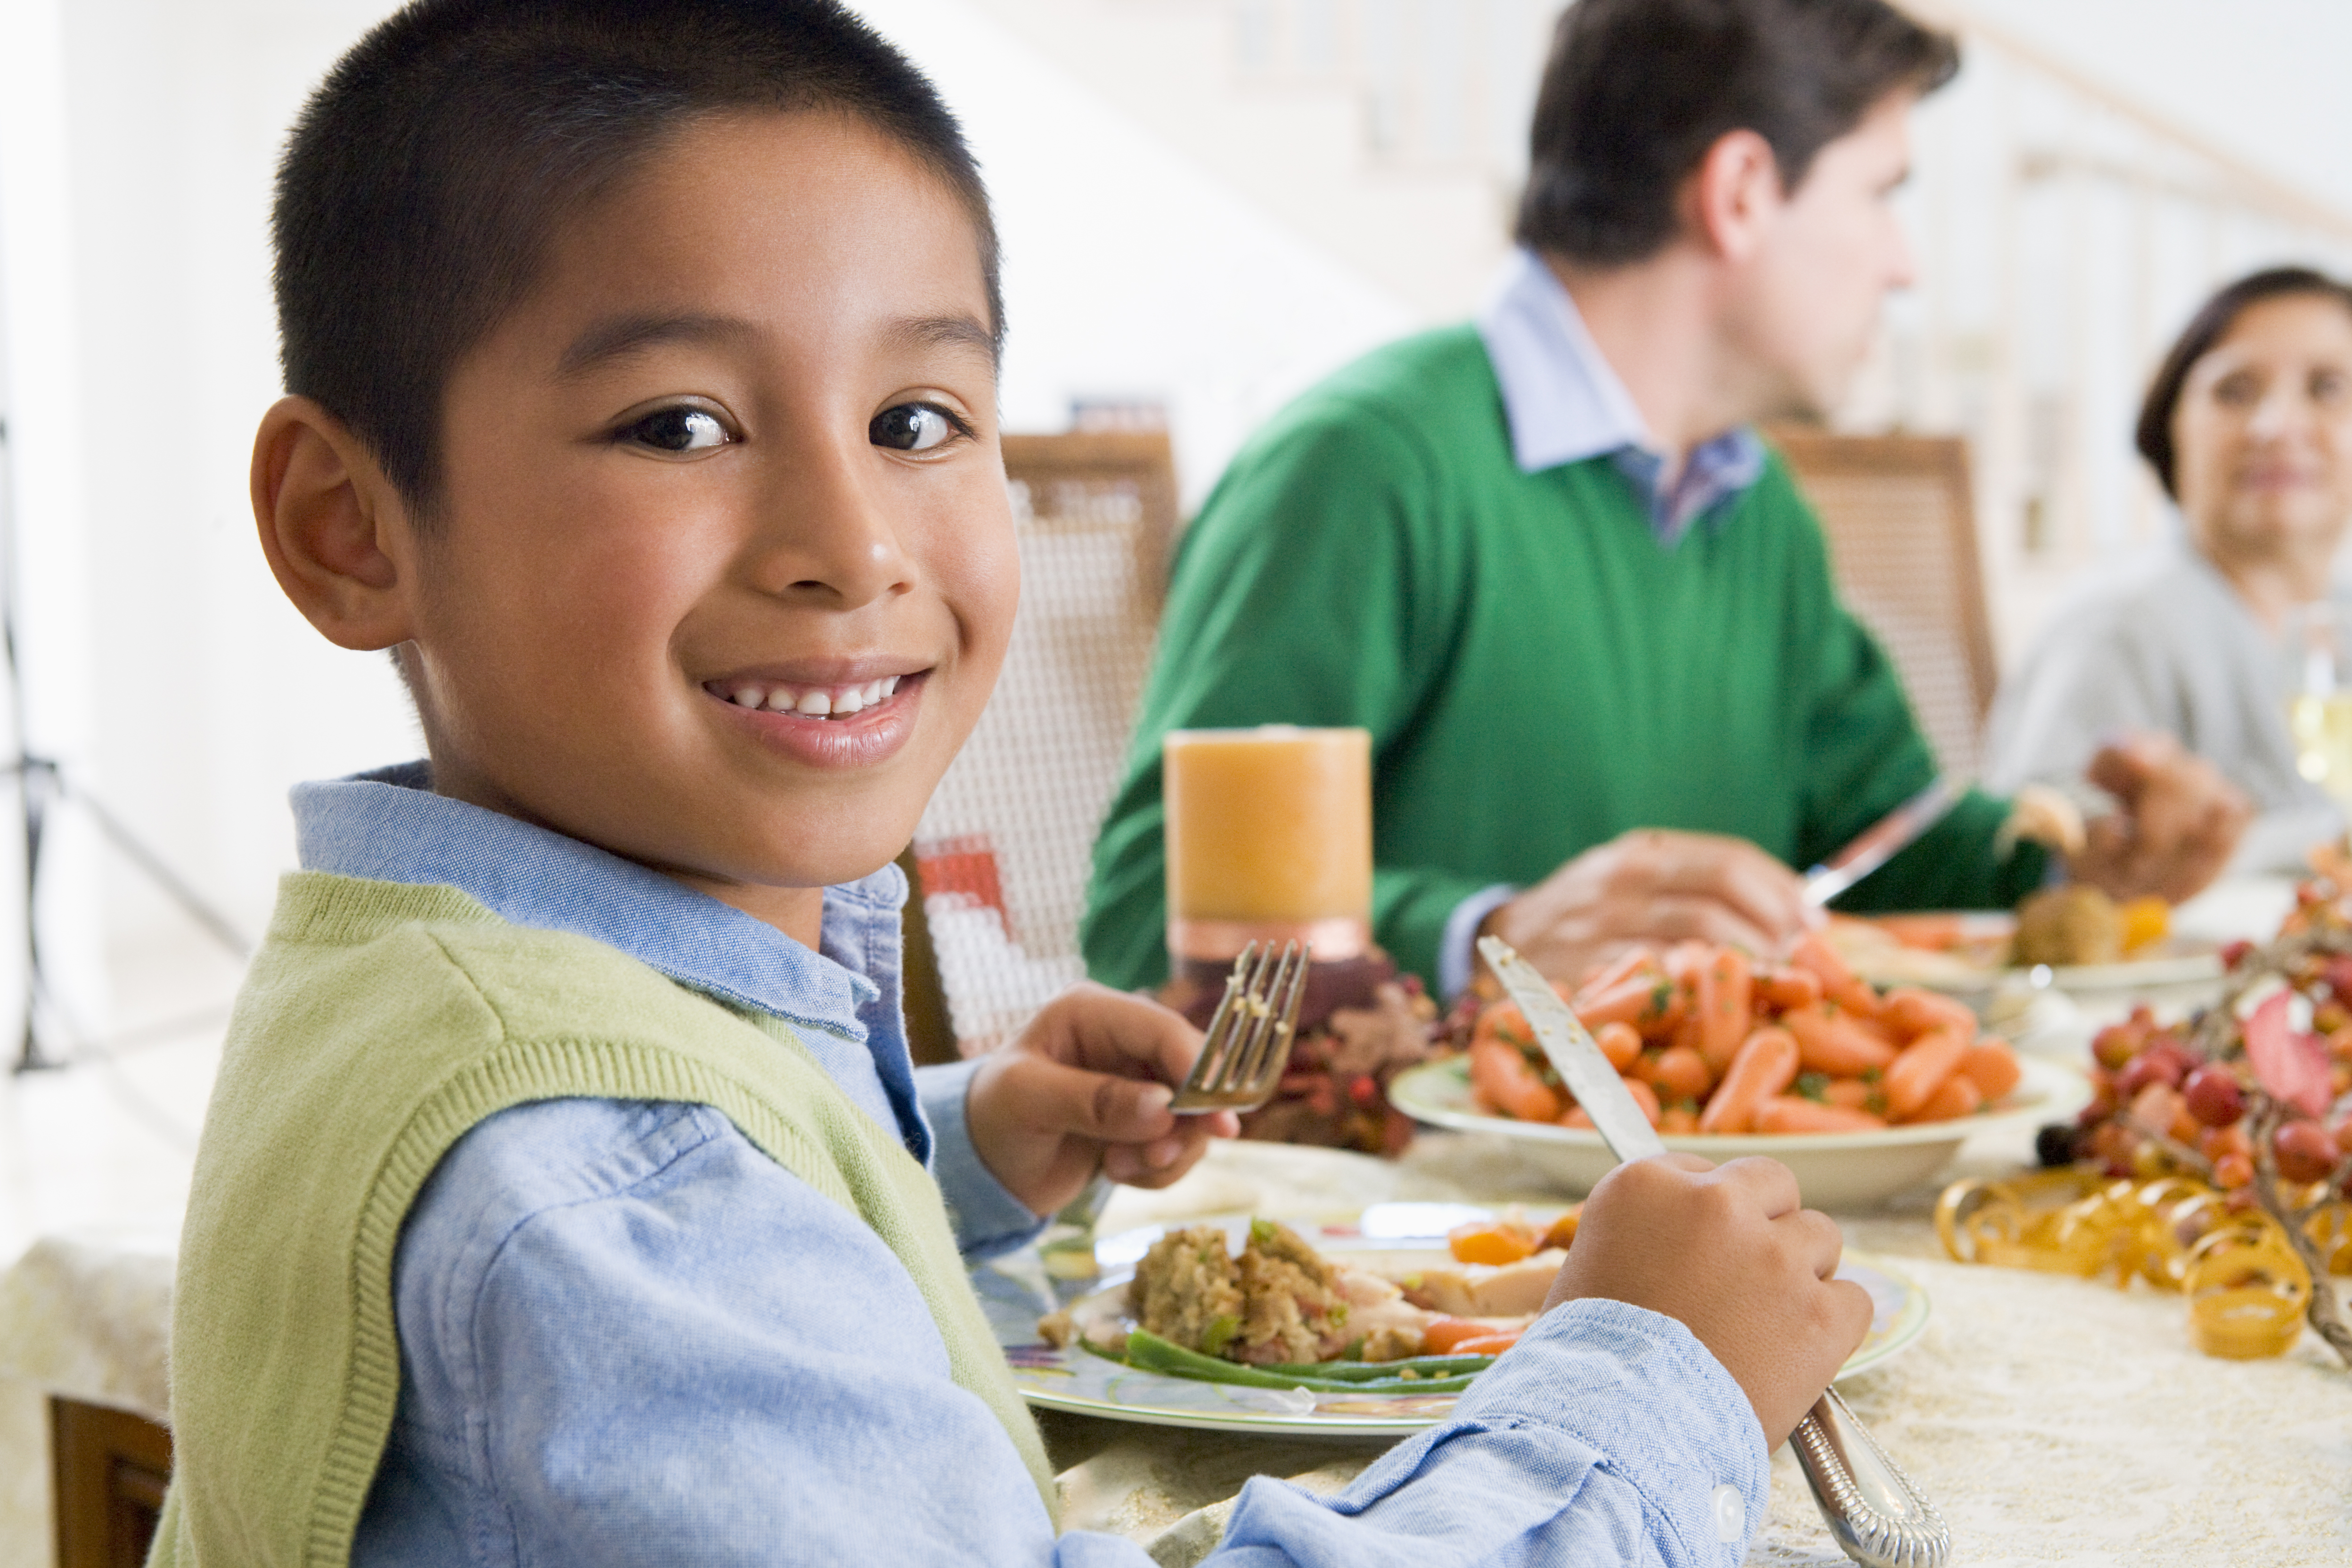 Mindful eating at the dinner table new mommy media for 1 year old not eating table food